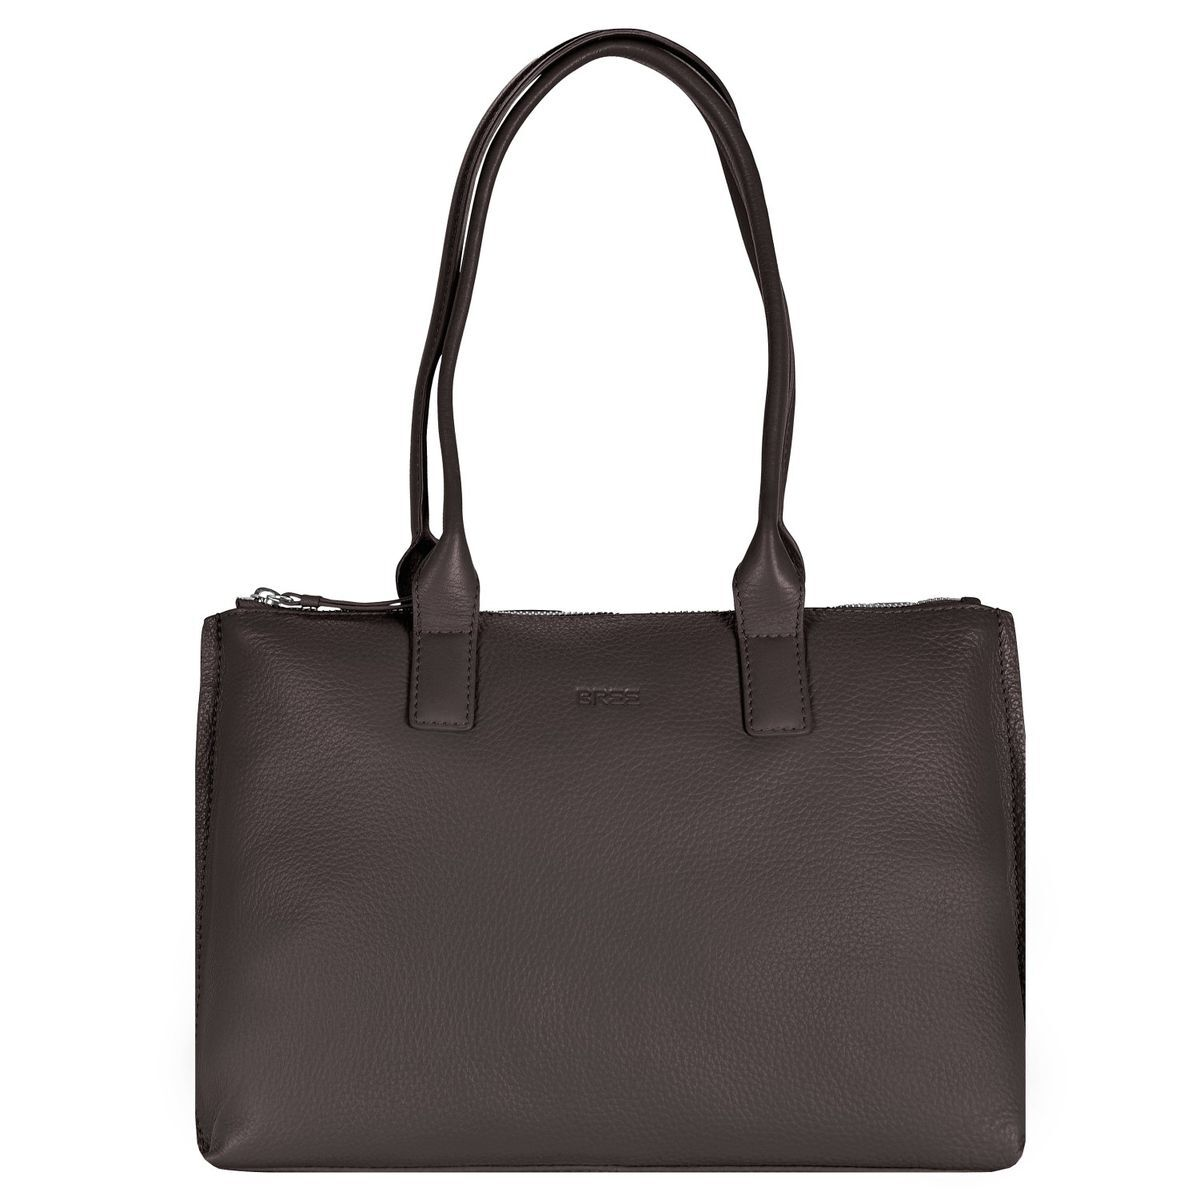 Toulouse 3 Shopper Leder 38 cm dark brown Bree K4Ck5a